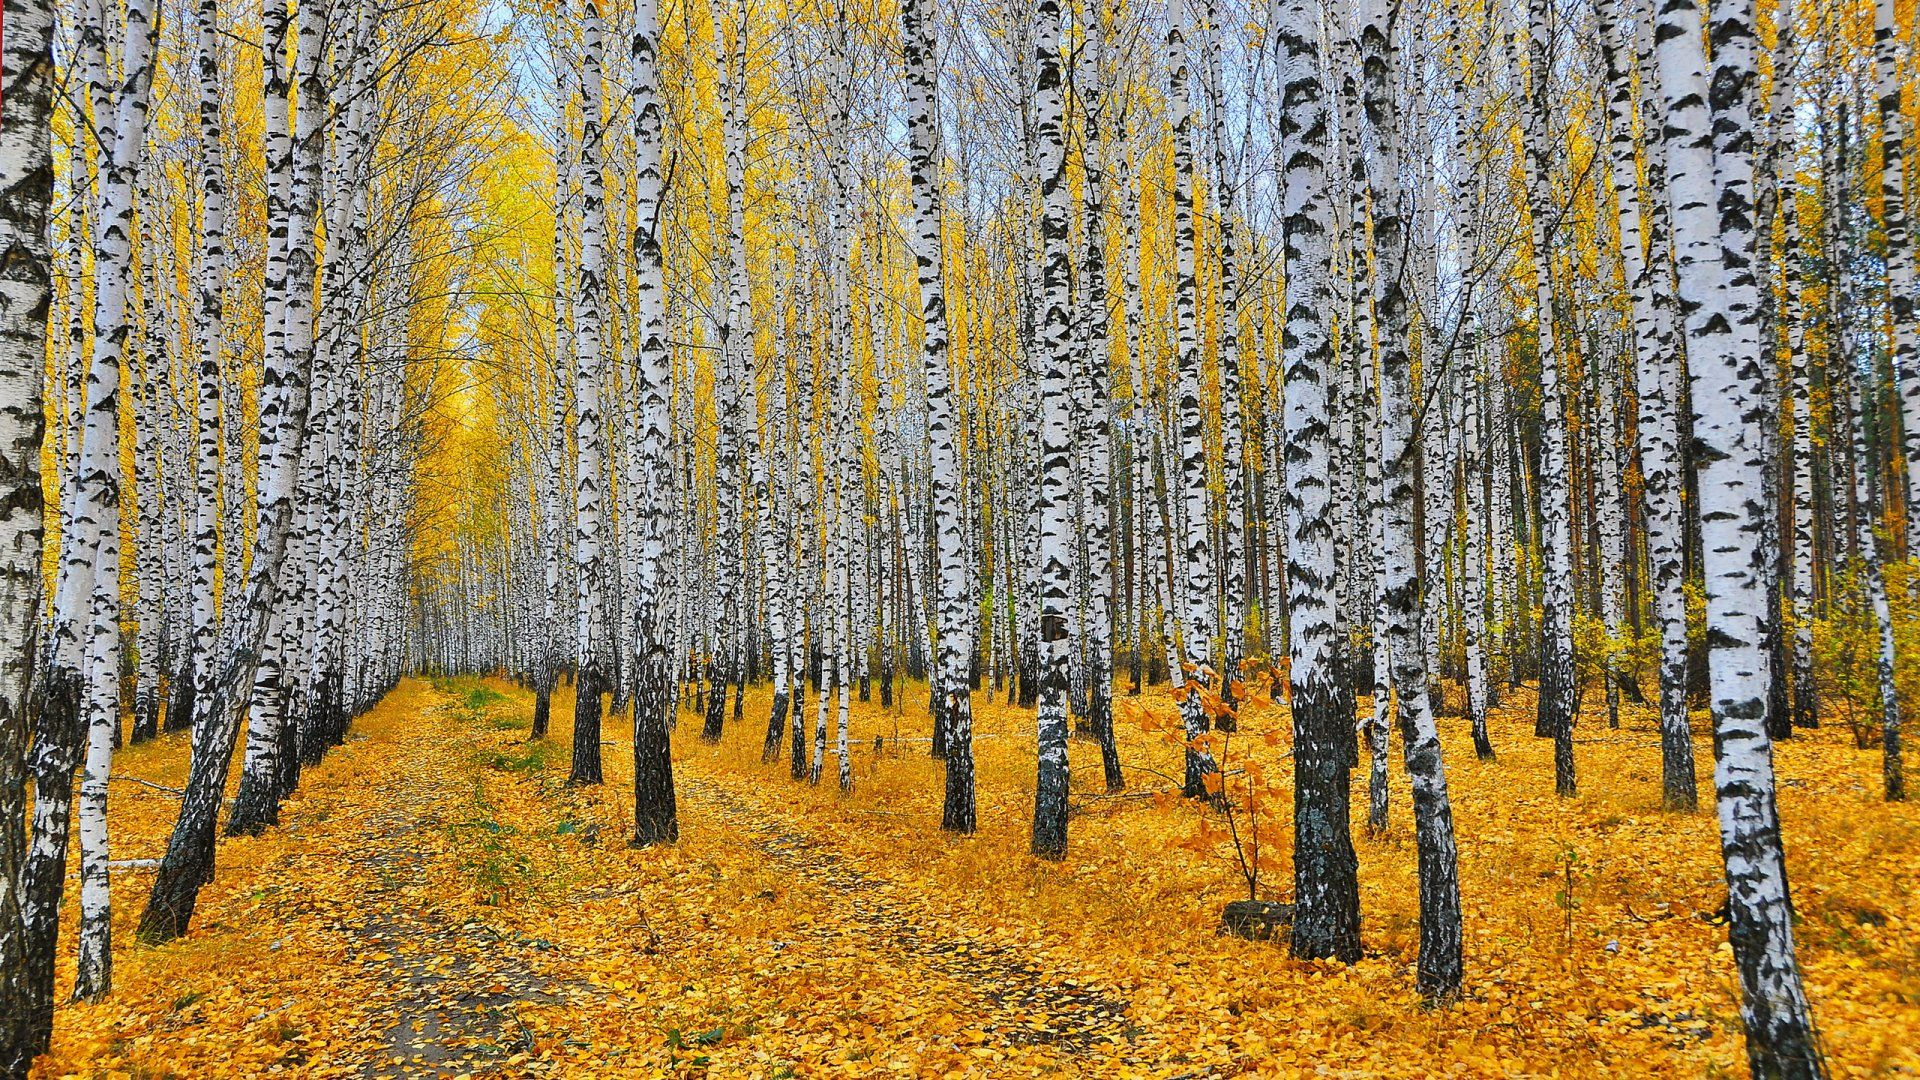 Autumn Birch Forest Photo